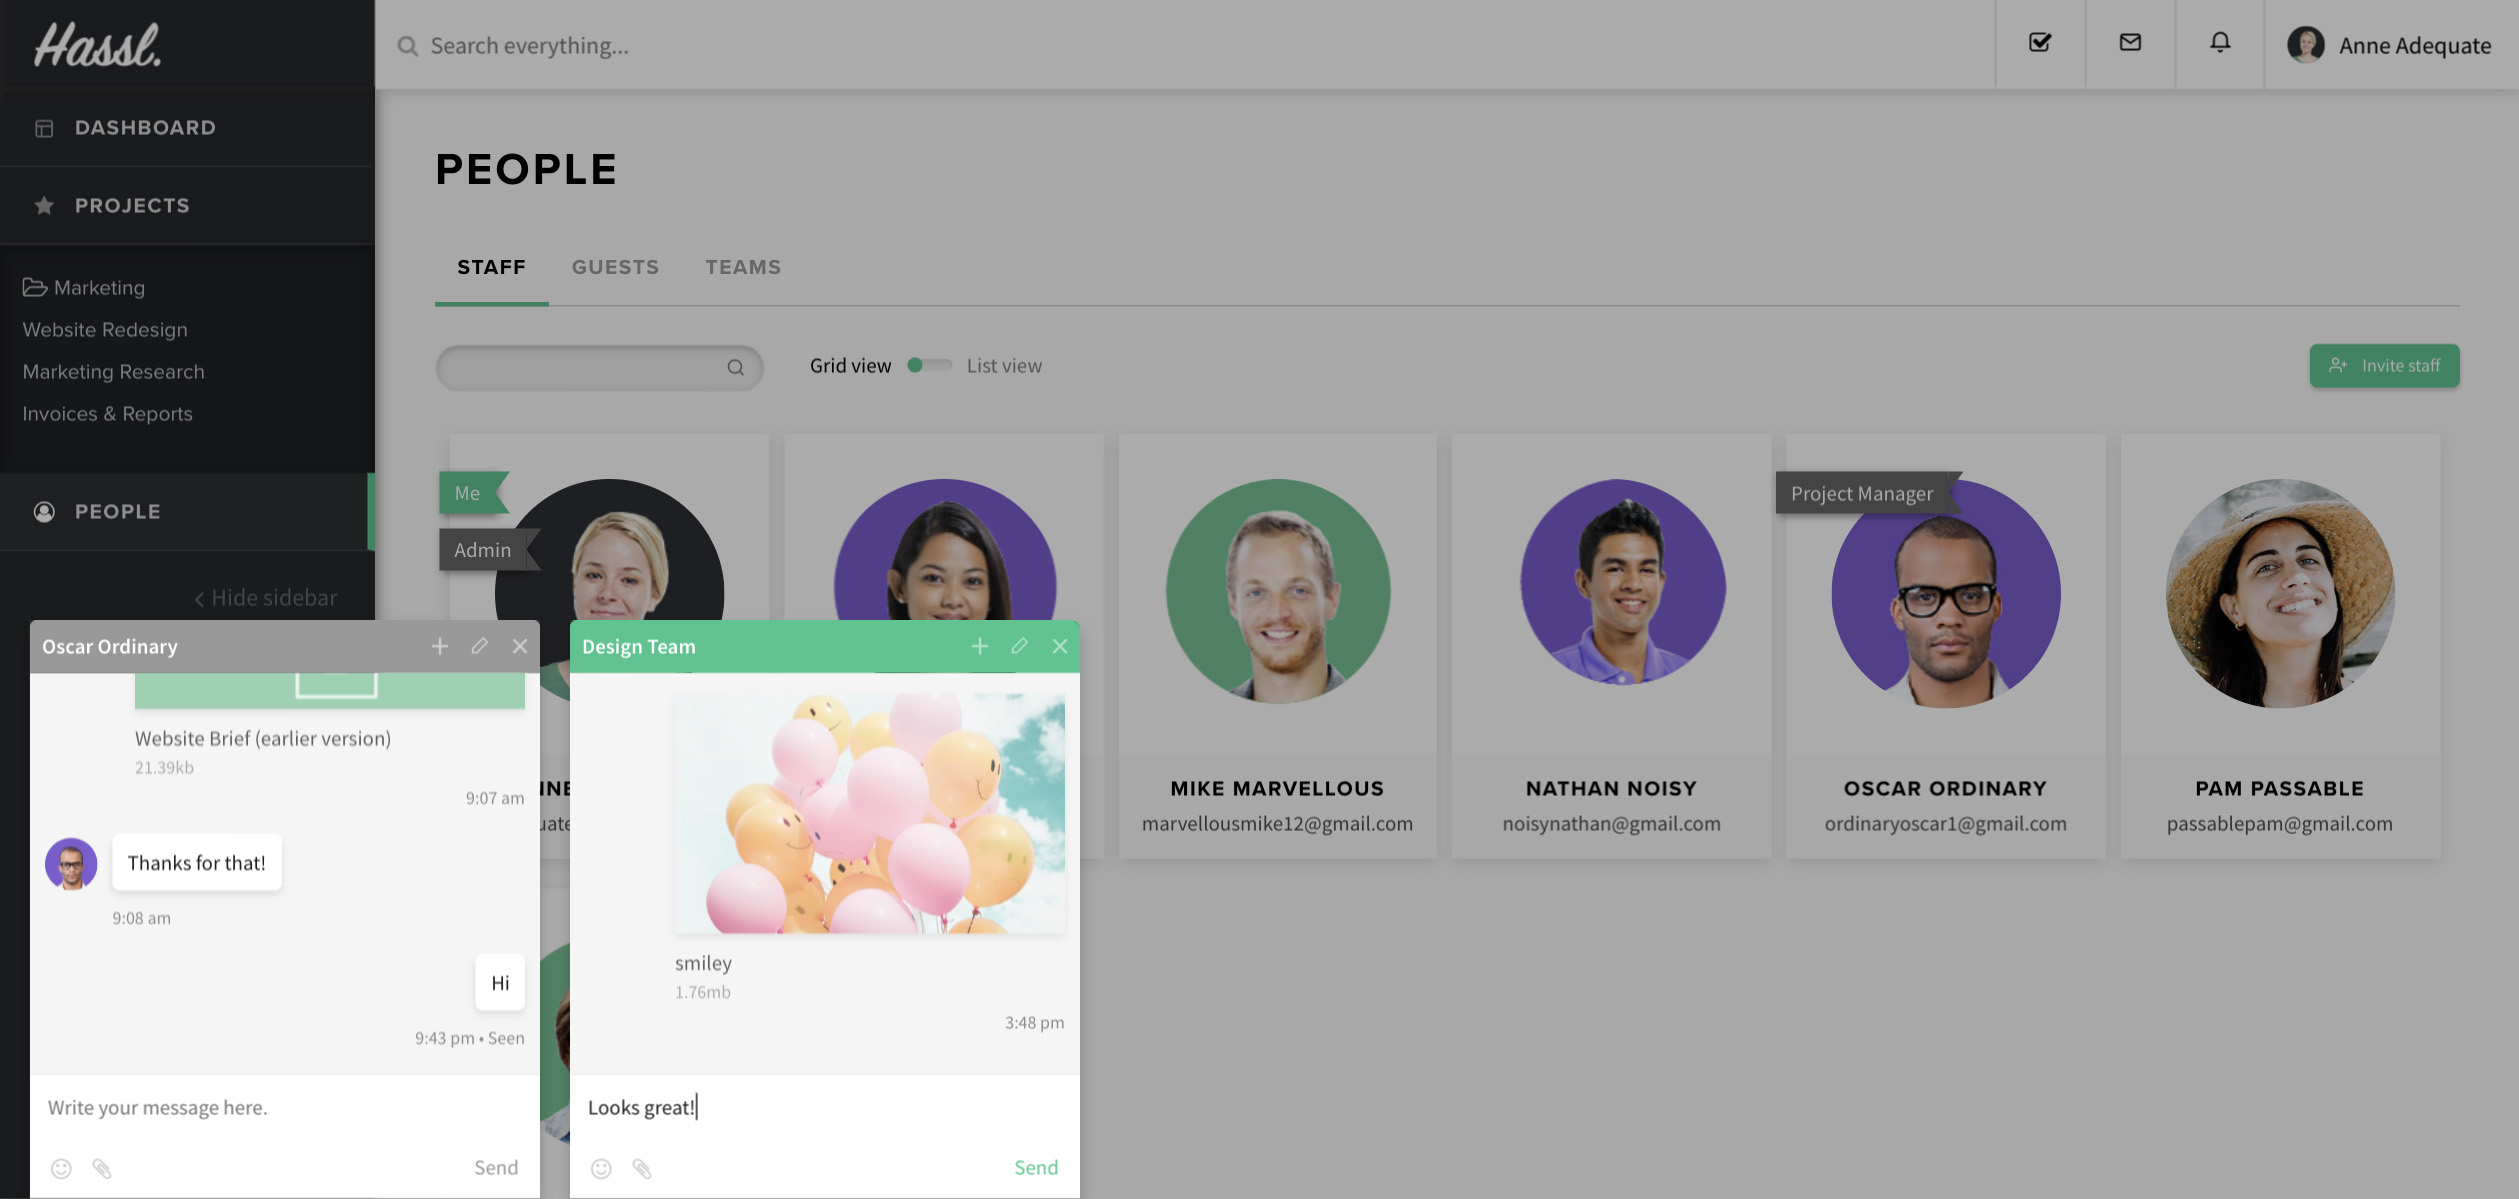 project management tool with online instant chat